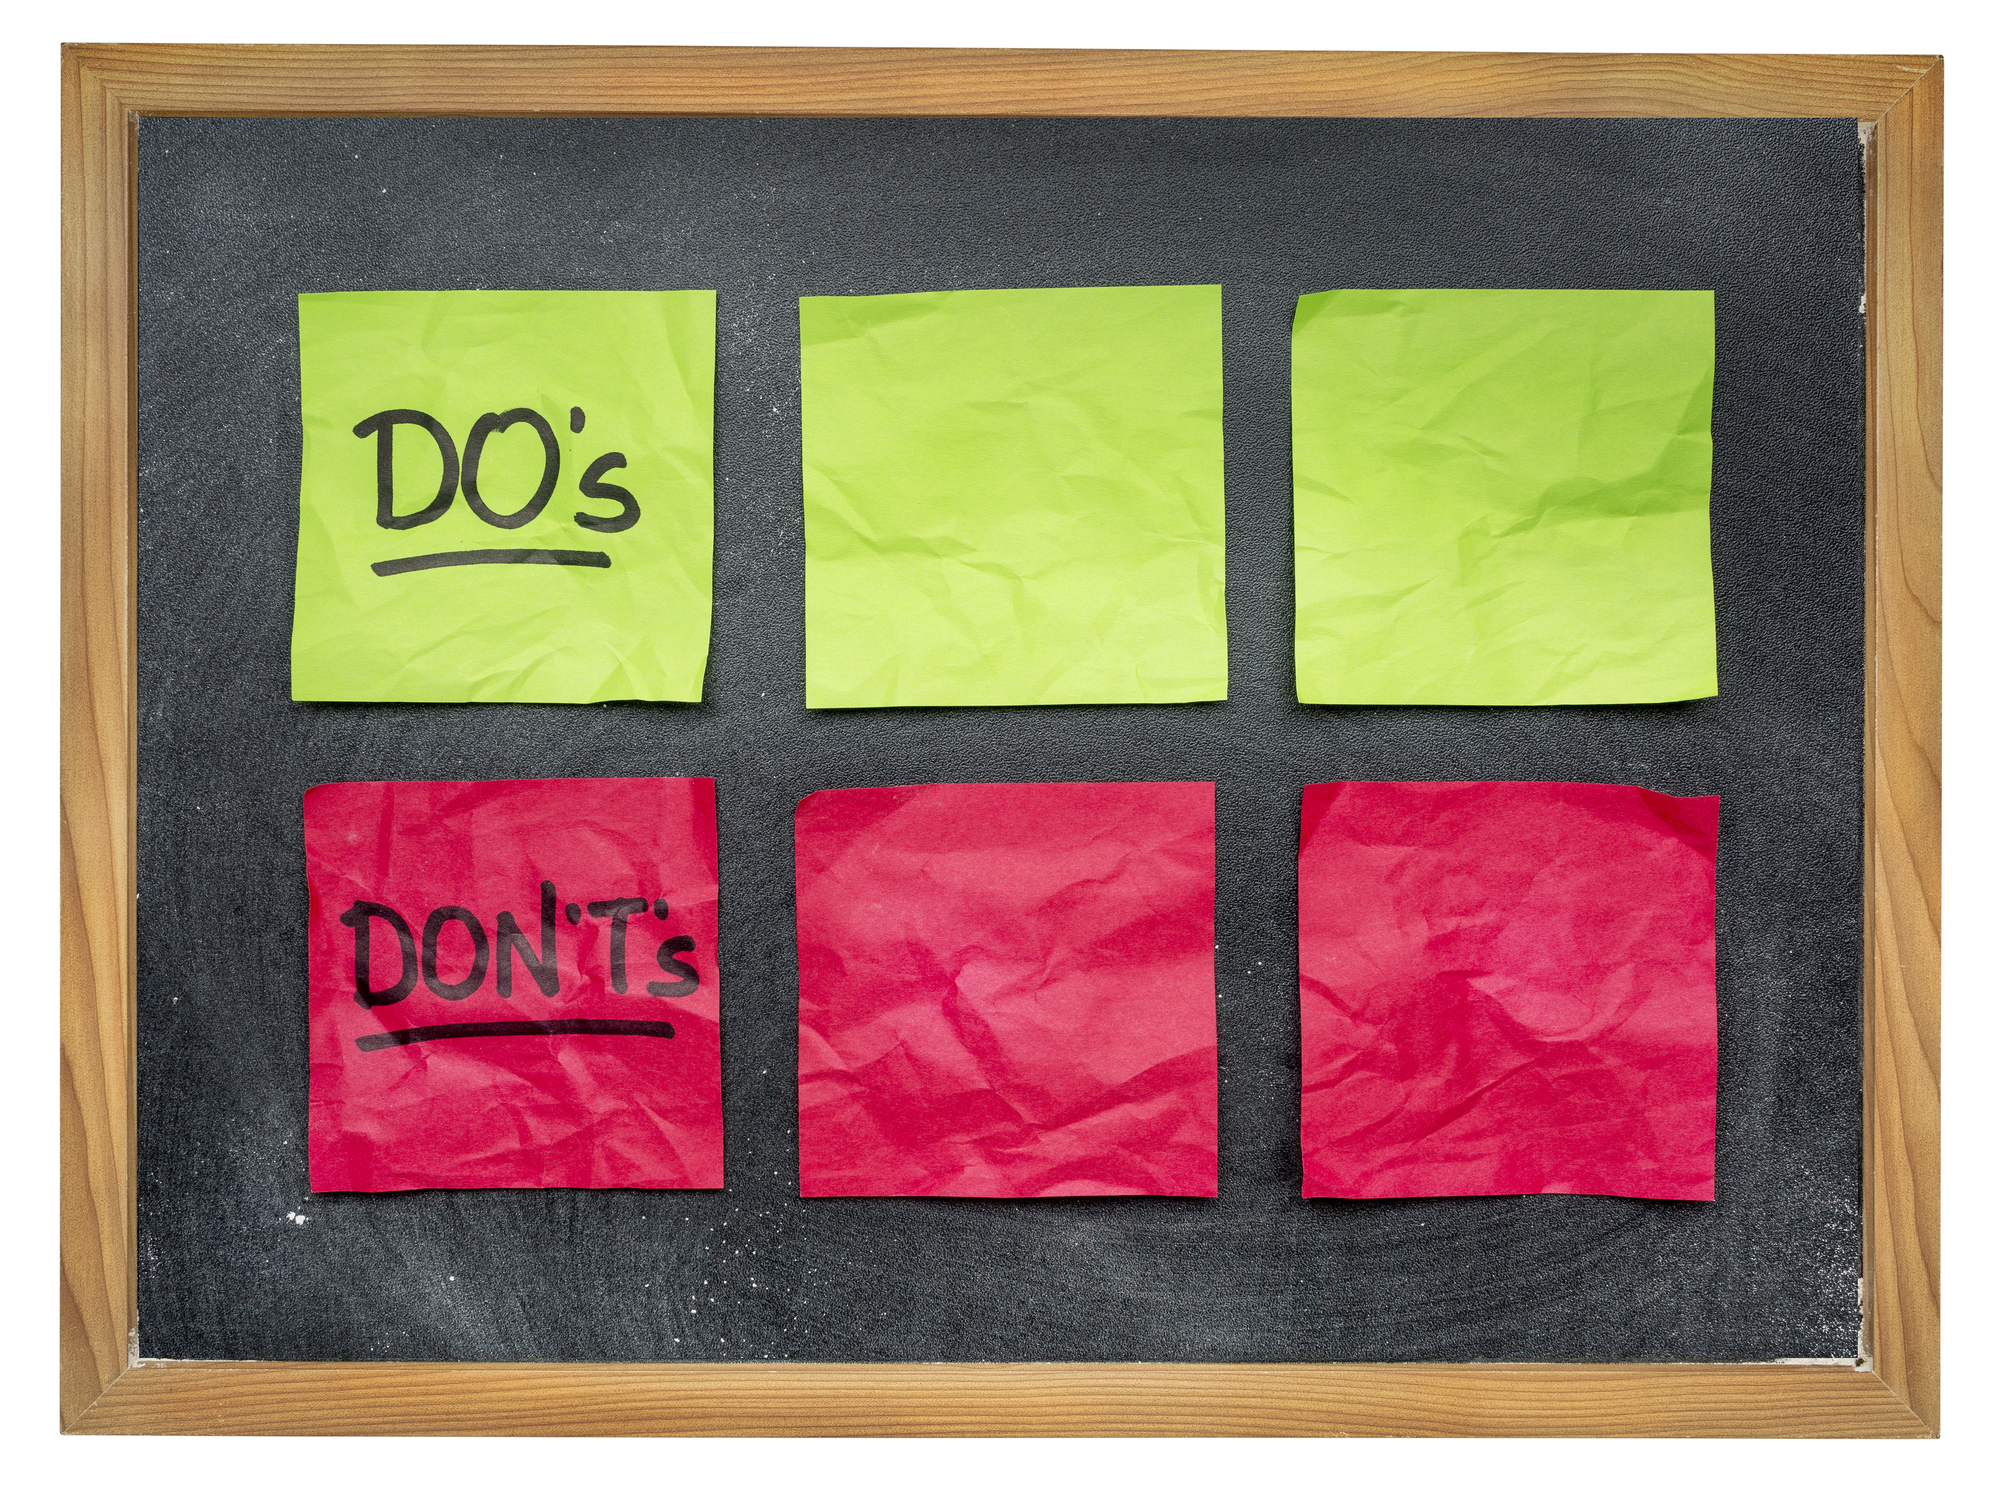 do's and don't's - things to do and not - blank sticky notes on on blackboard